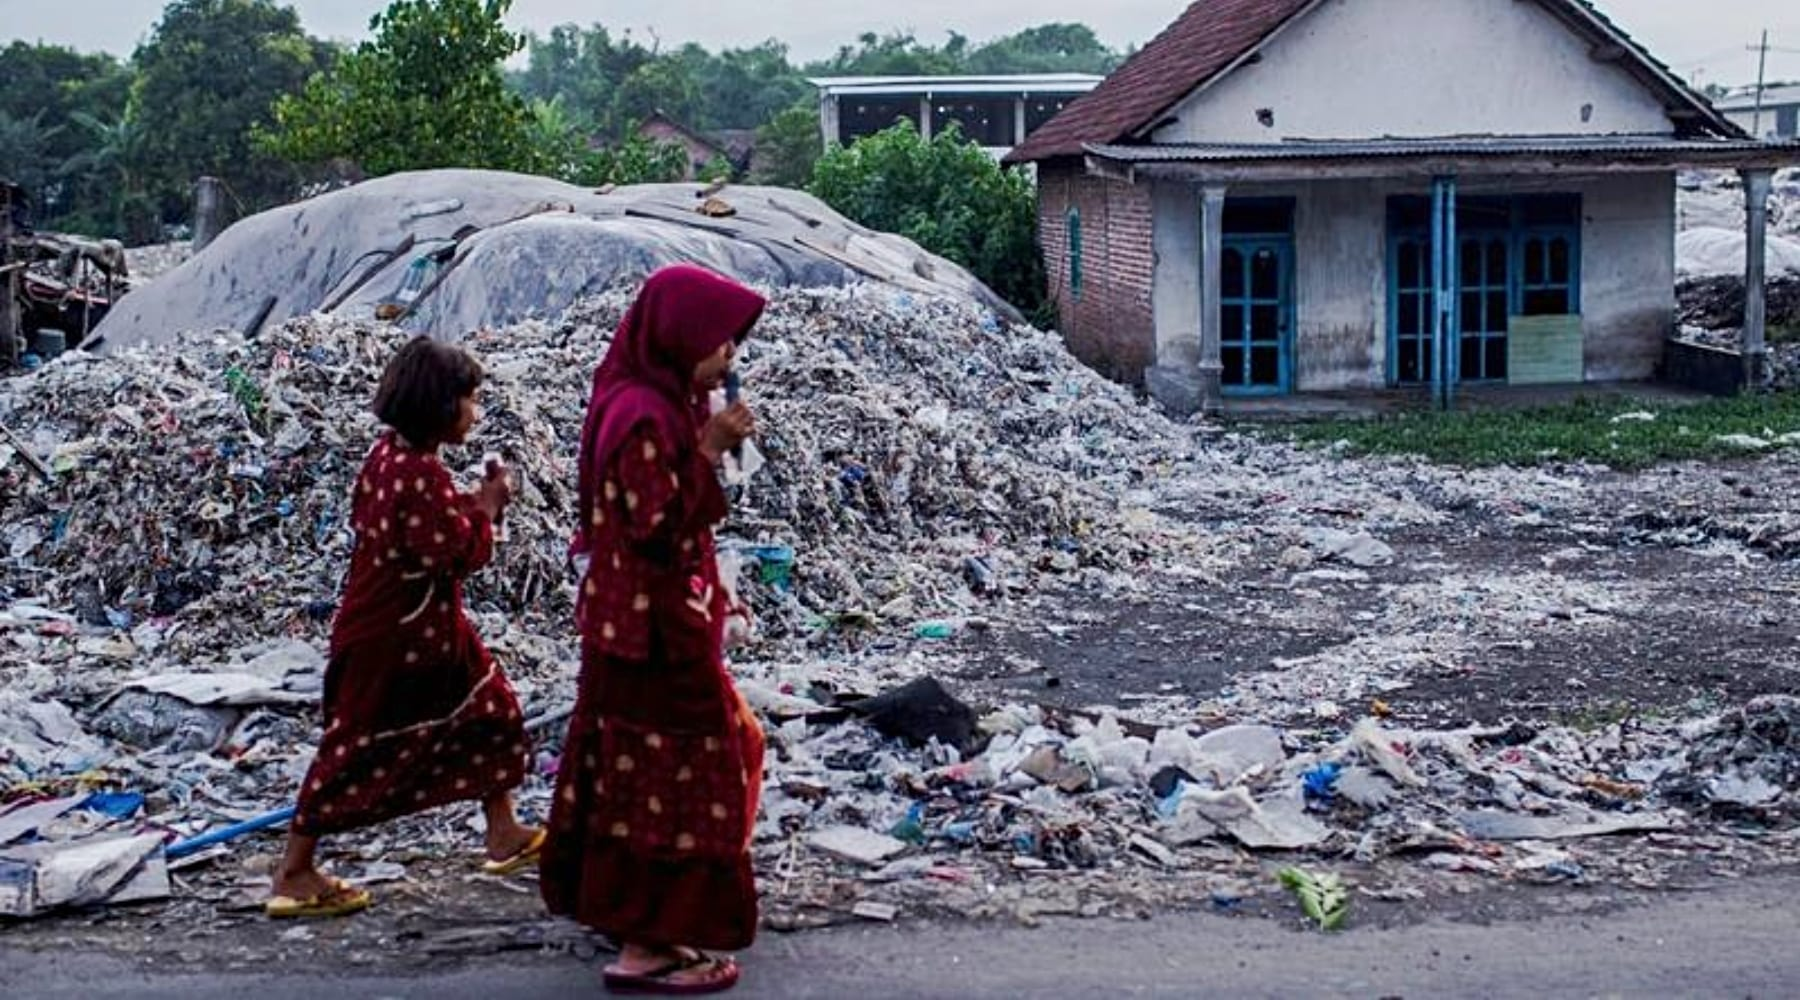 'Recyclable' Plastic Creating 'Flood' of Waste in Poorer Nations